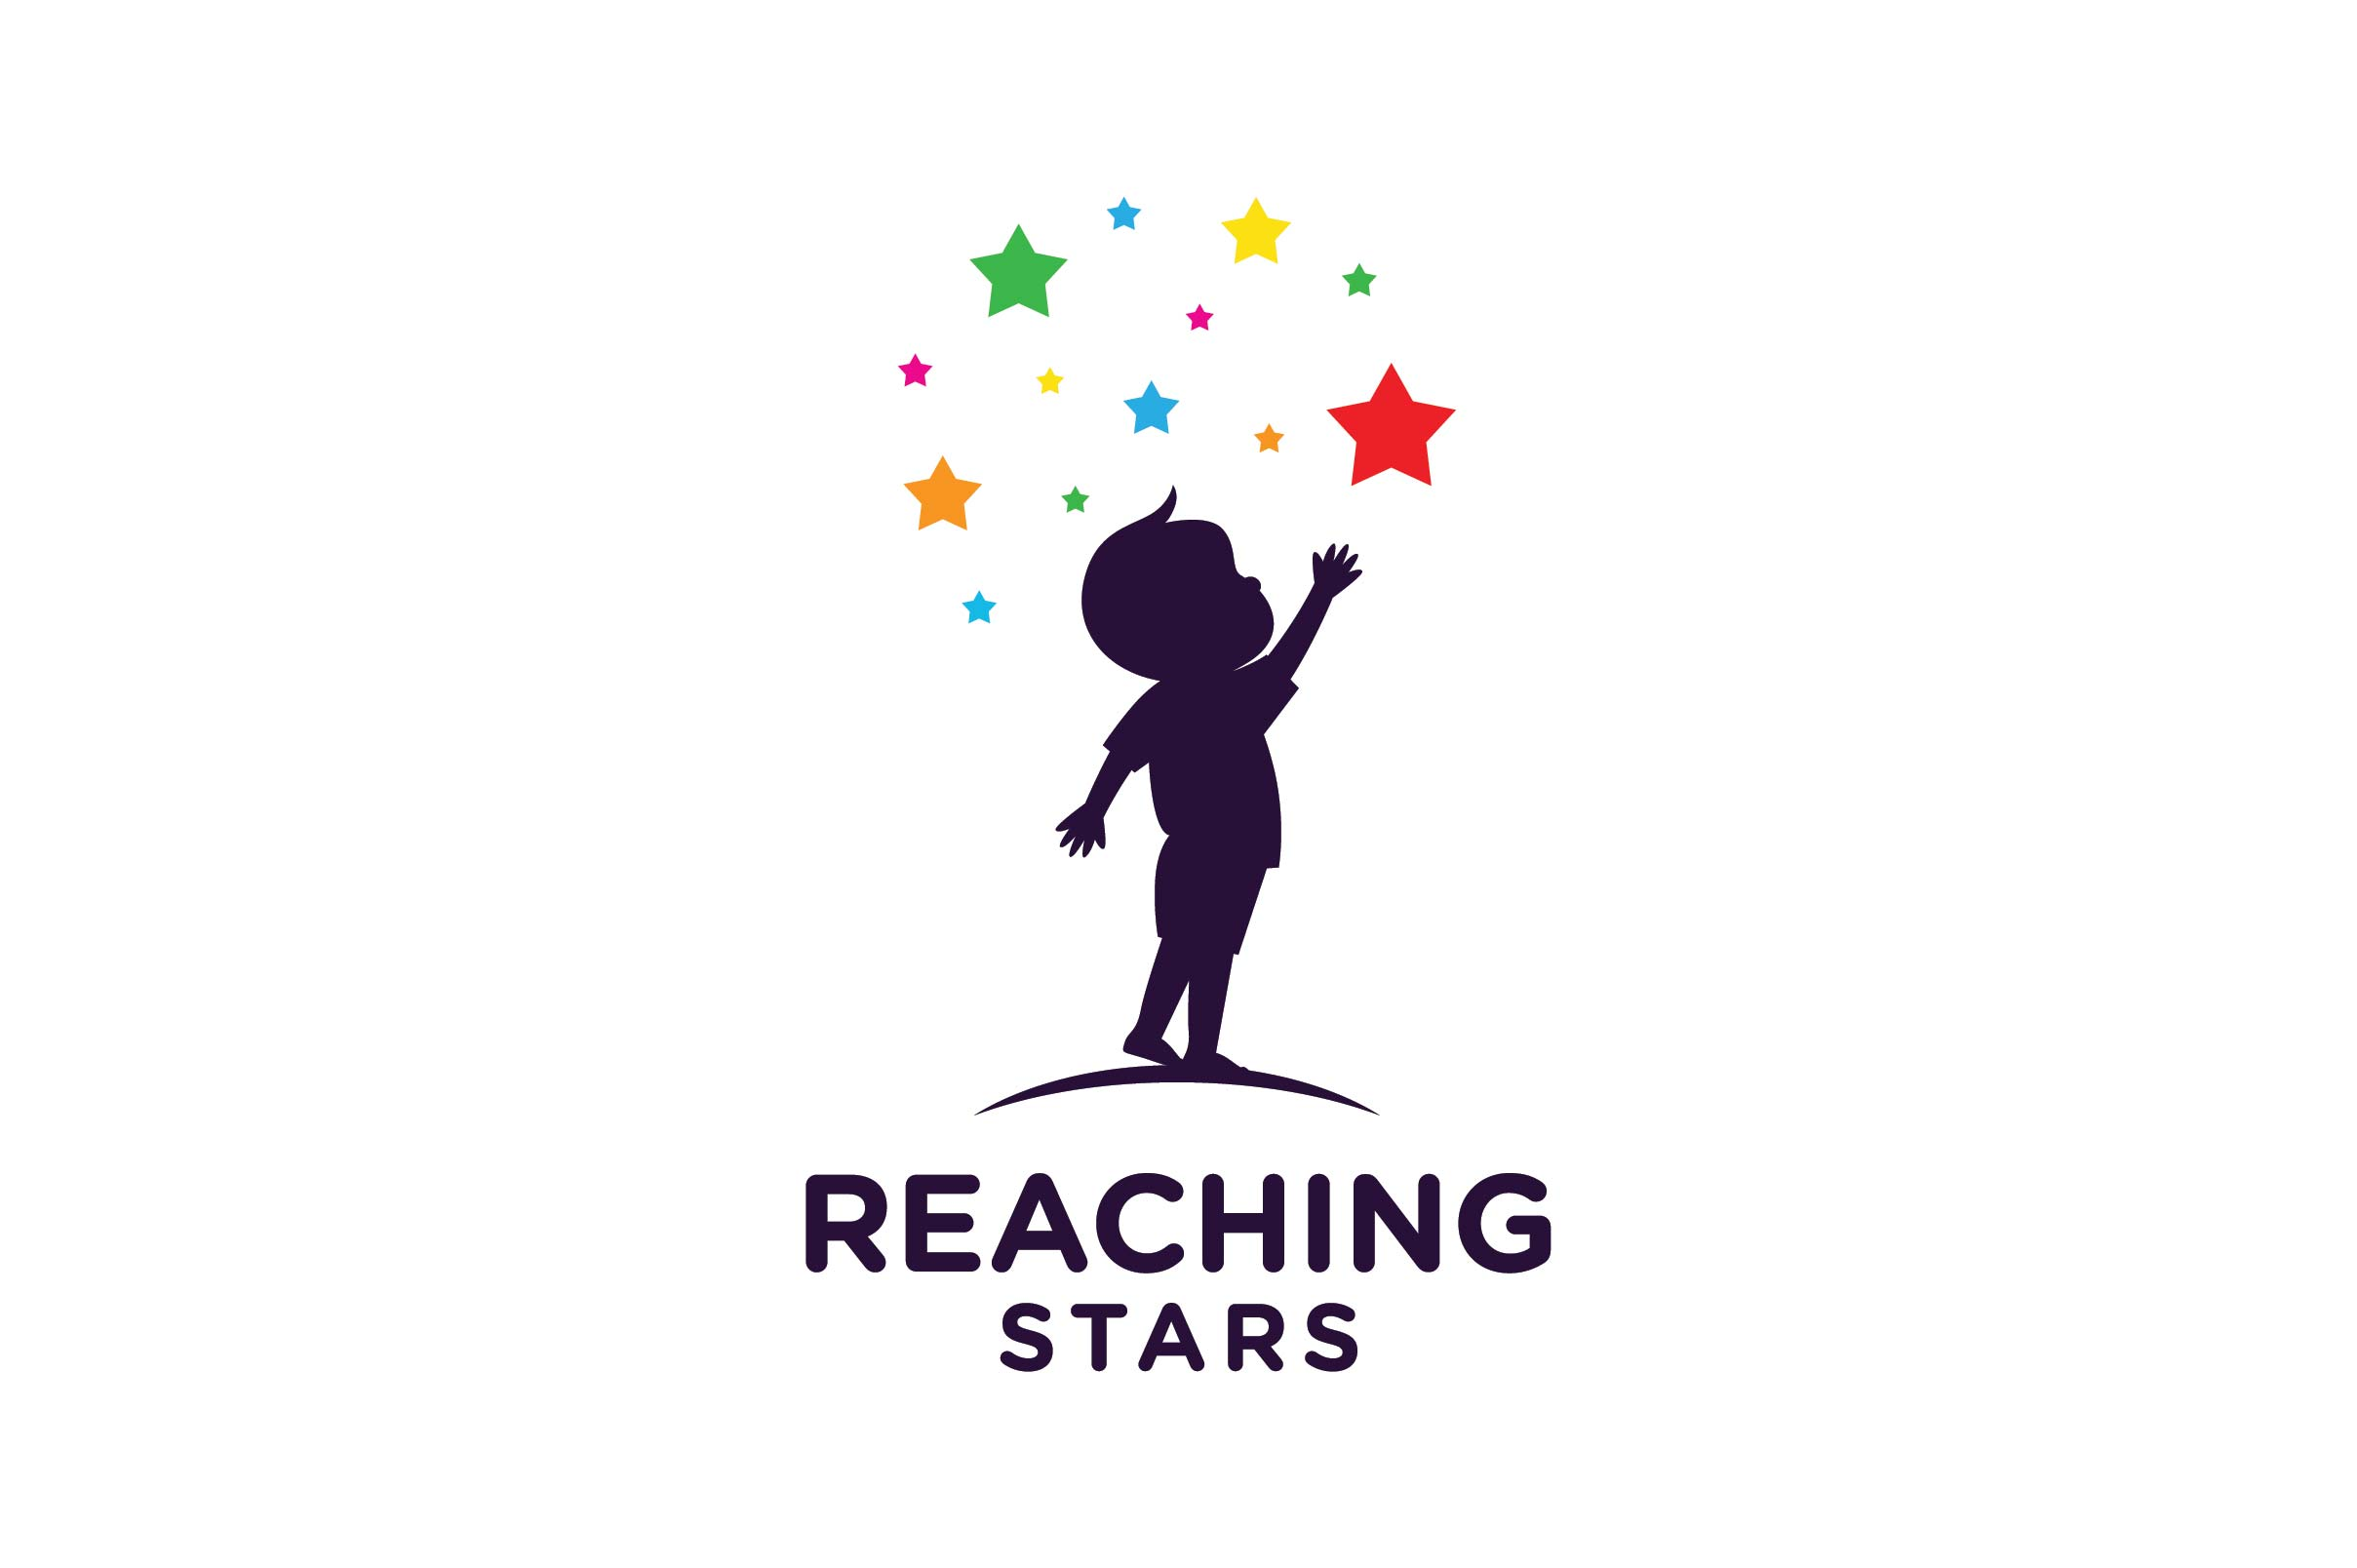 Download Free A Kid Reaching Stars Logo Design Graphic By Nuranitalutfiana92 for Cricut Explore, Silhouette and other cutting machines.